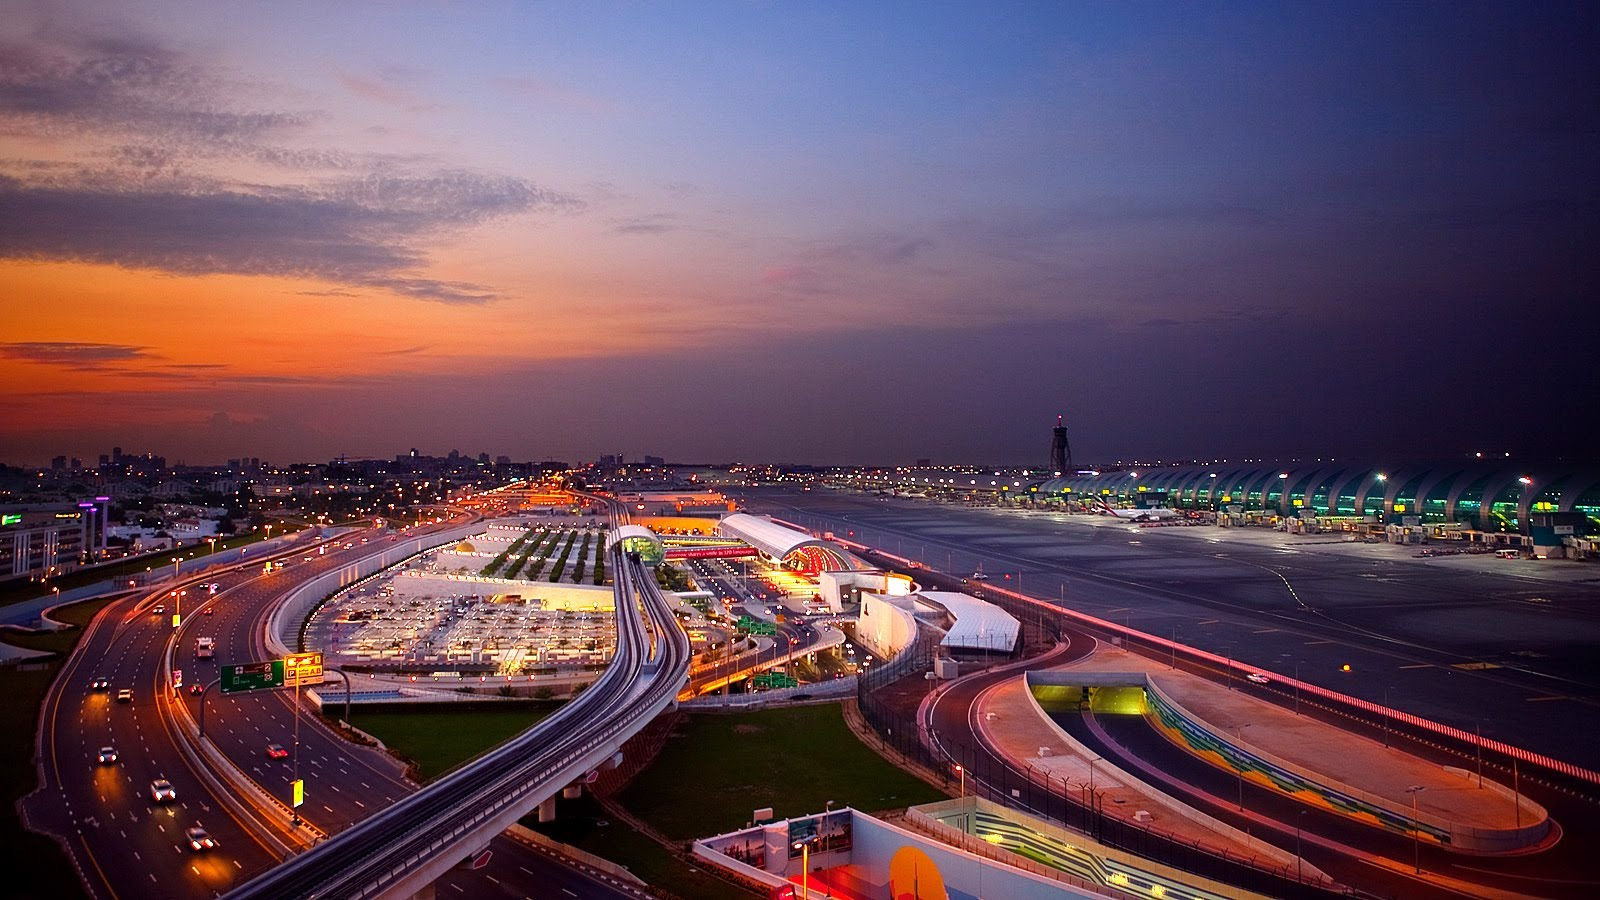 Maximum number of passengers from Indian subcontinent passed through Dubai International Airport.